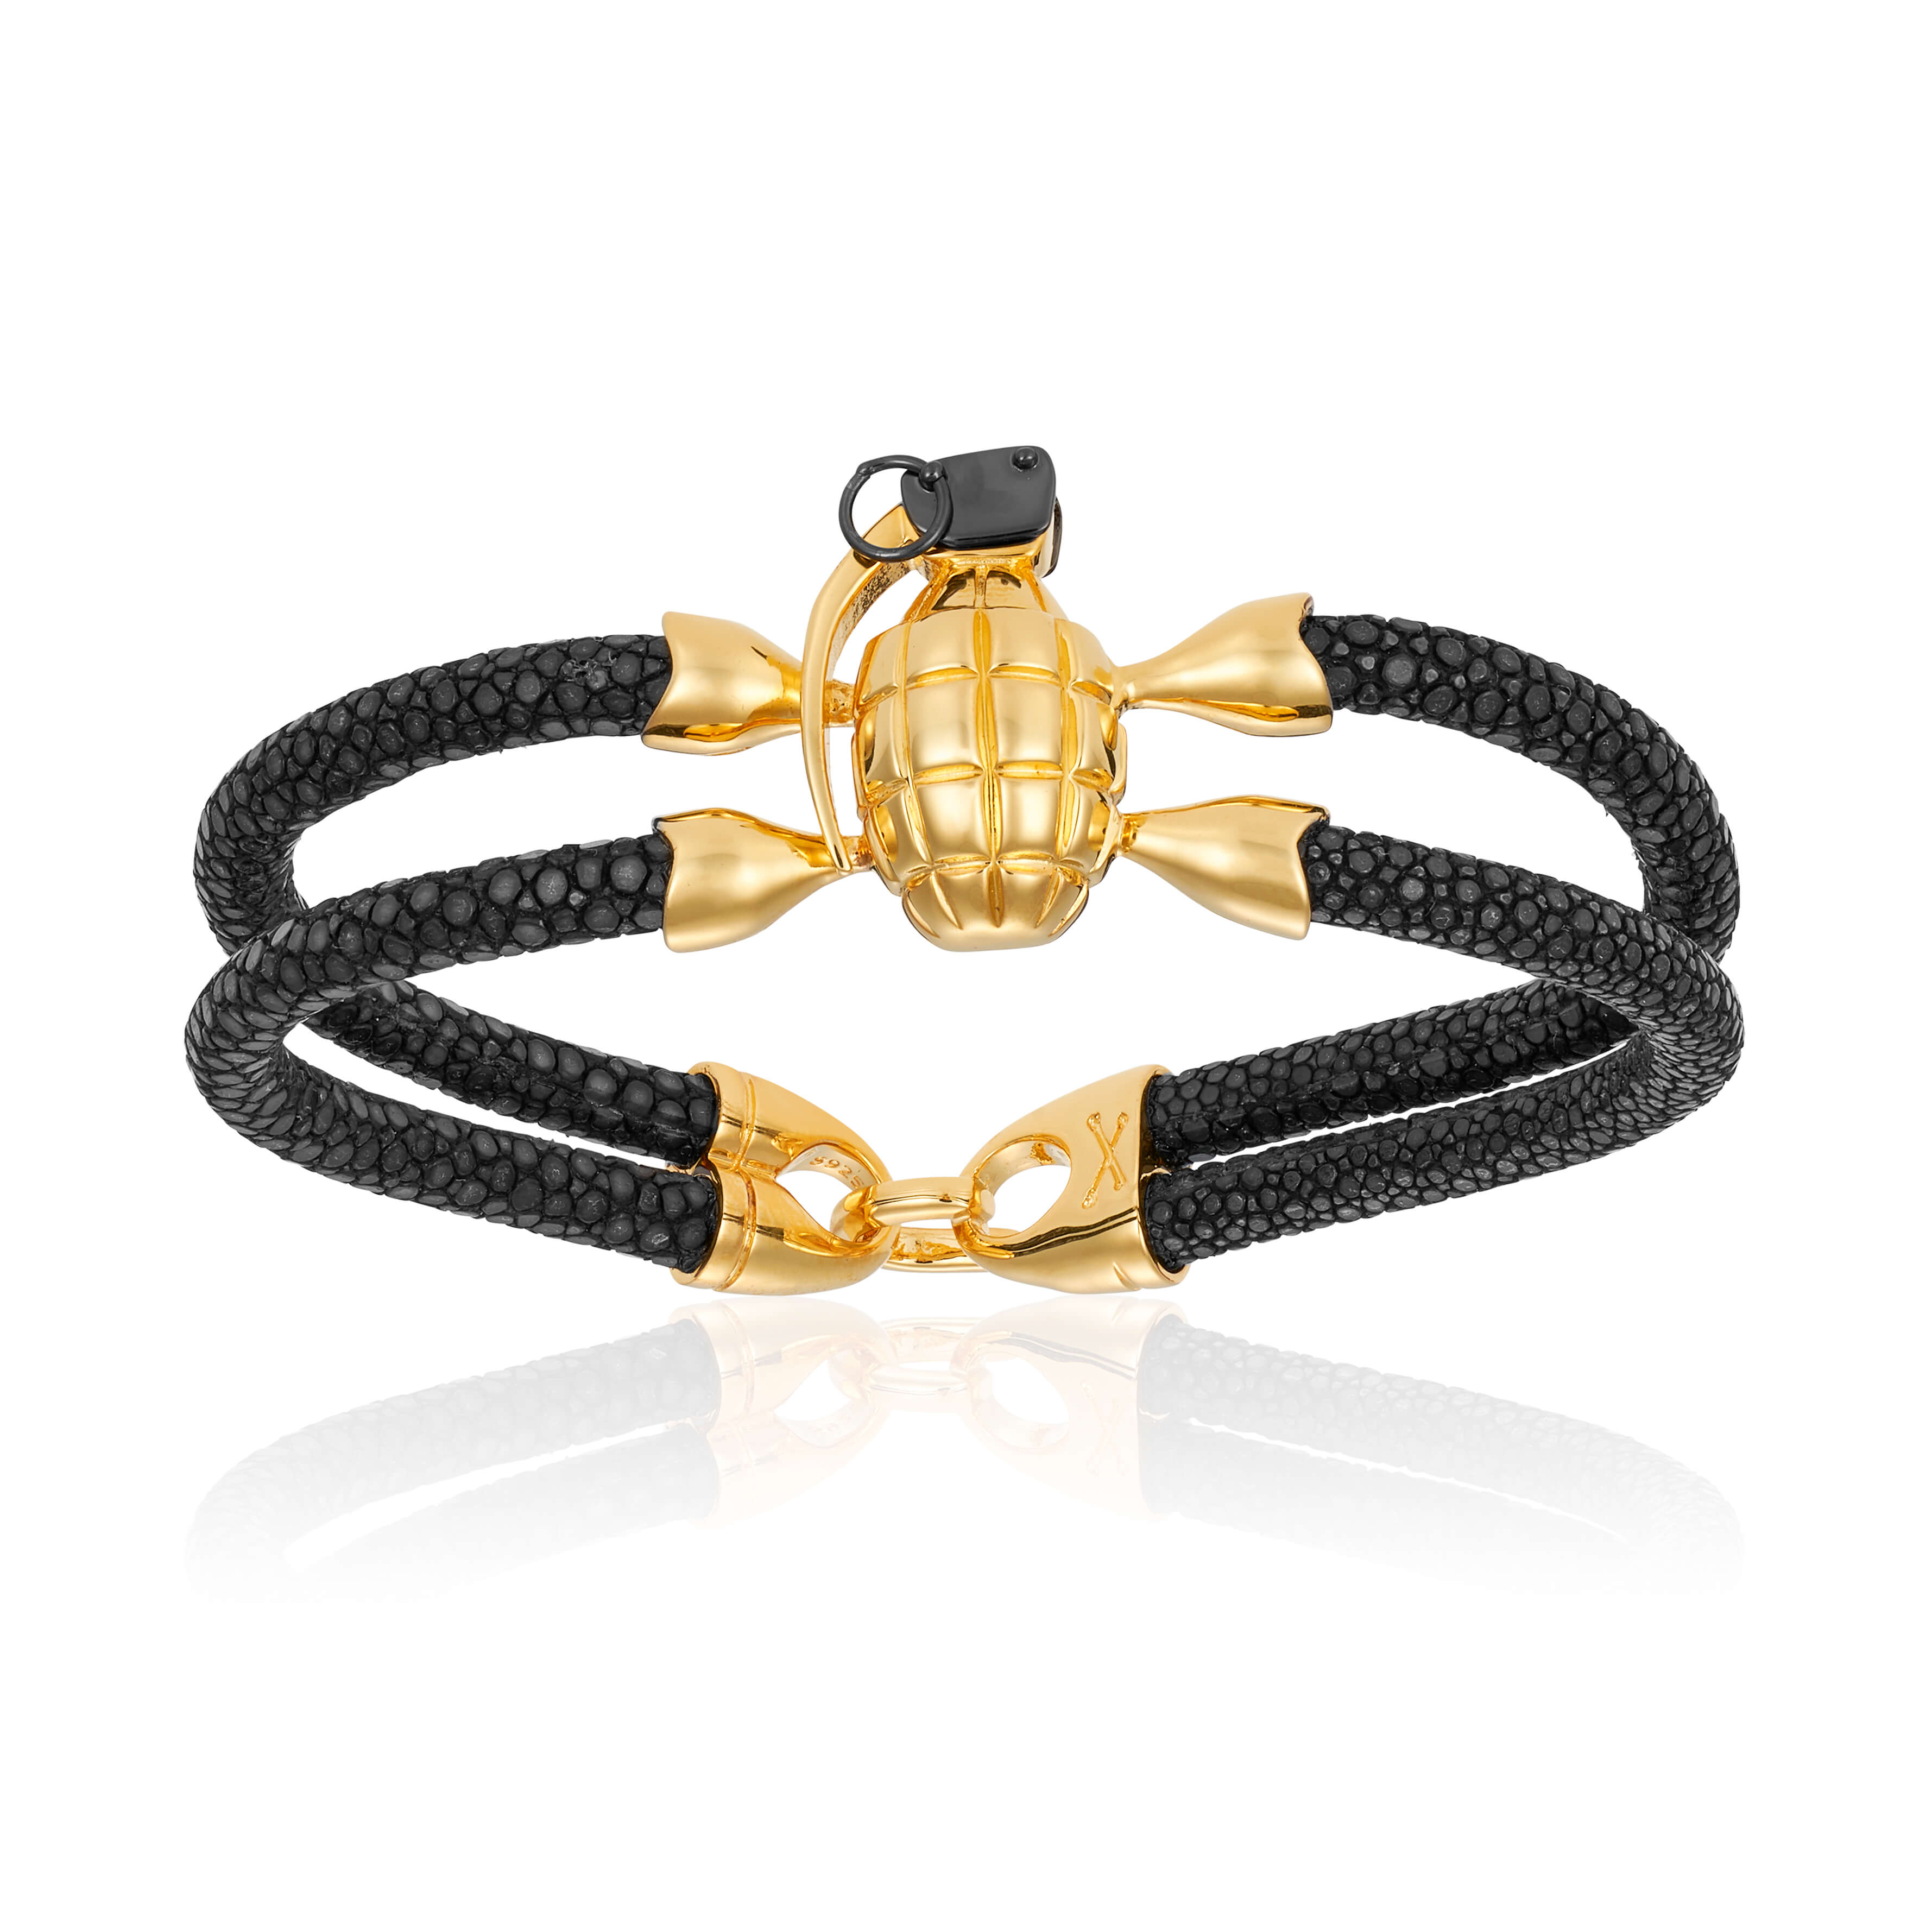 Black stingray bracelet with yellow gold grenade for man